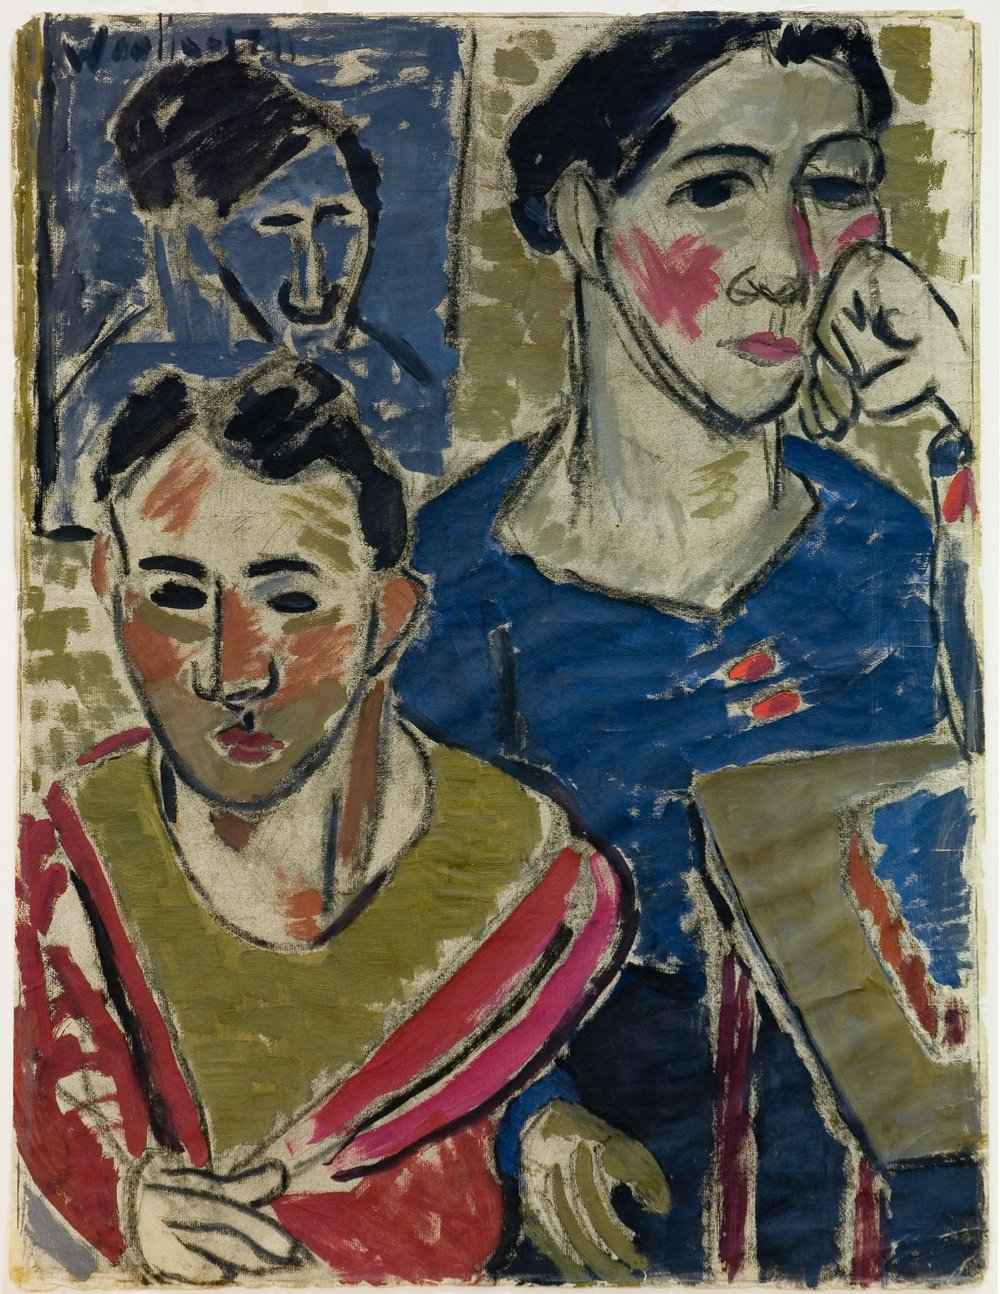 Figures from Life, 1936, Sir Tosswill Woollaston, oil and charcoal on paper Auckland Art Gallery Toi o Tamaki, gift of Colin McCahon, 1954